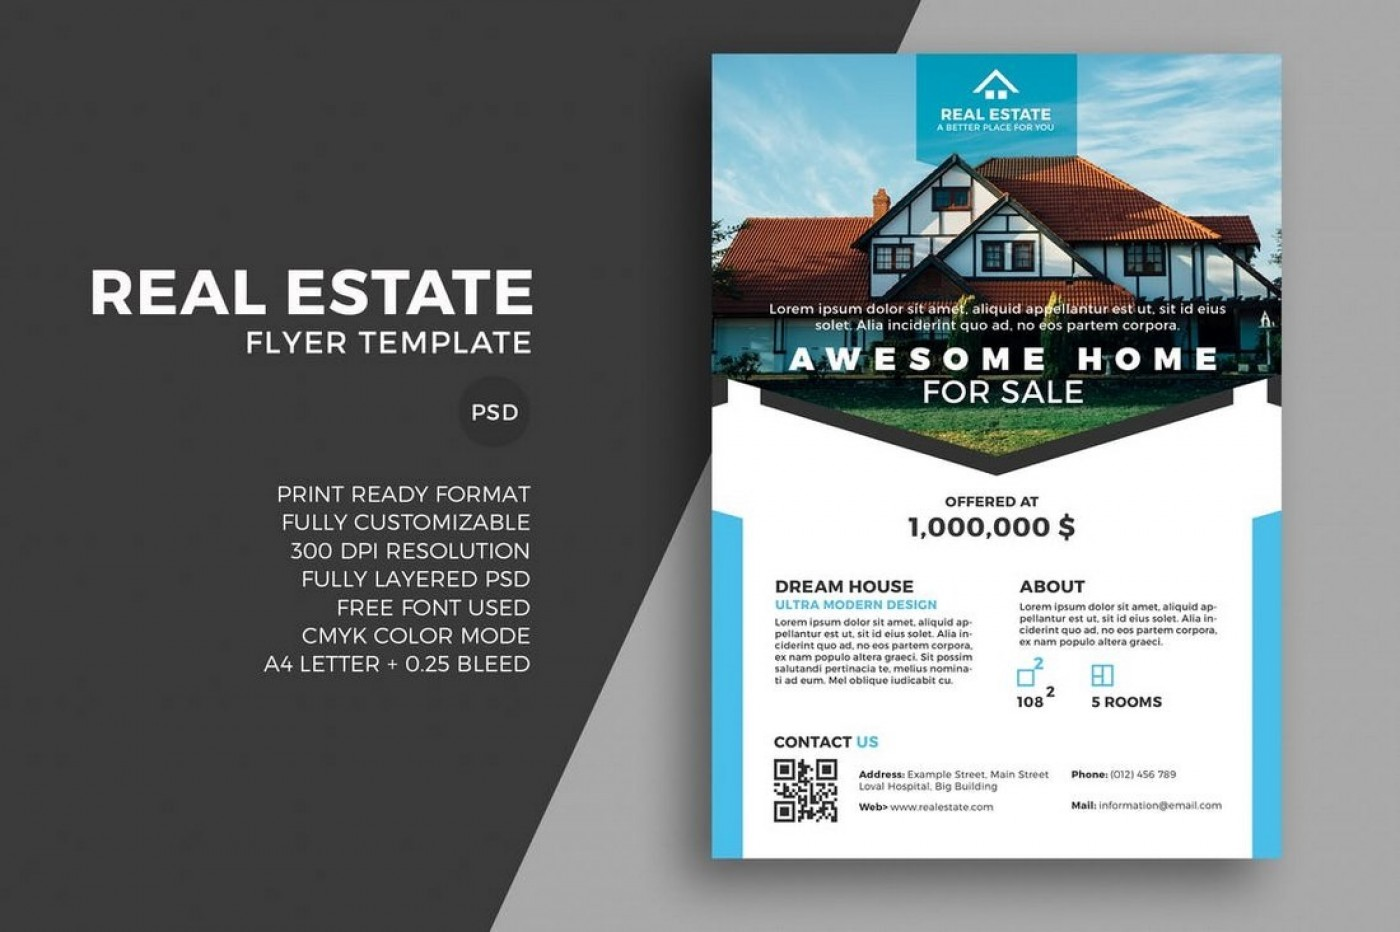 008 Dreaded Real Estate Advertising Template Picture  Facebook Ad Craigslist1400